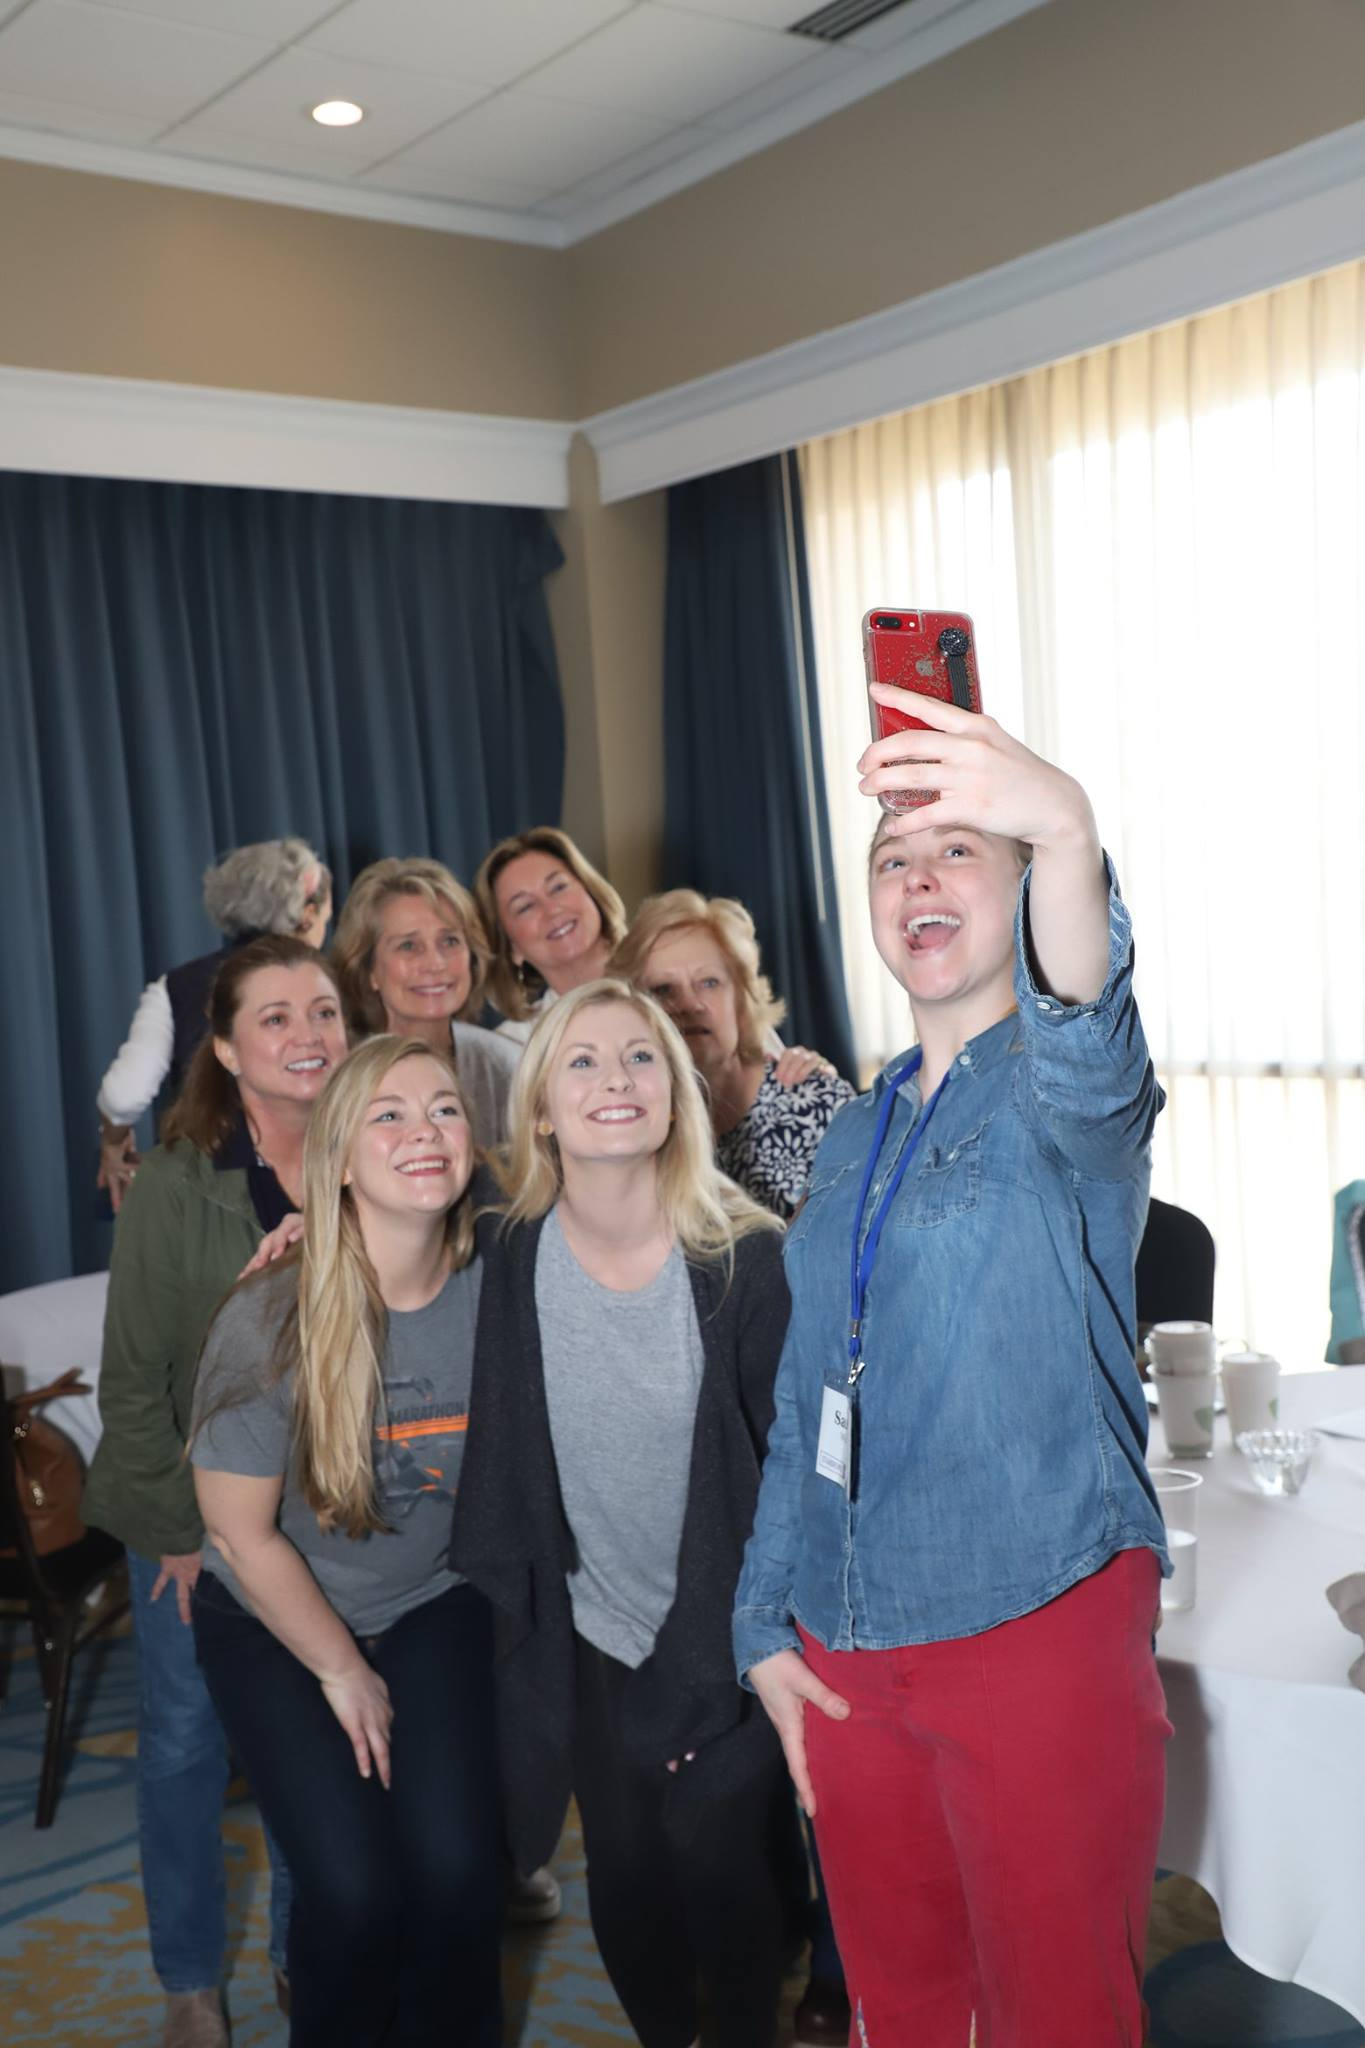 Group Selfie at Women's Retreat